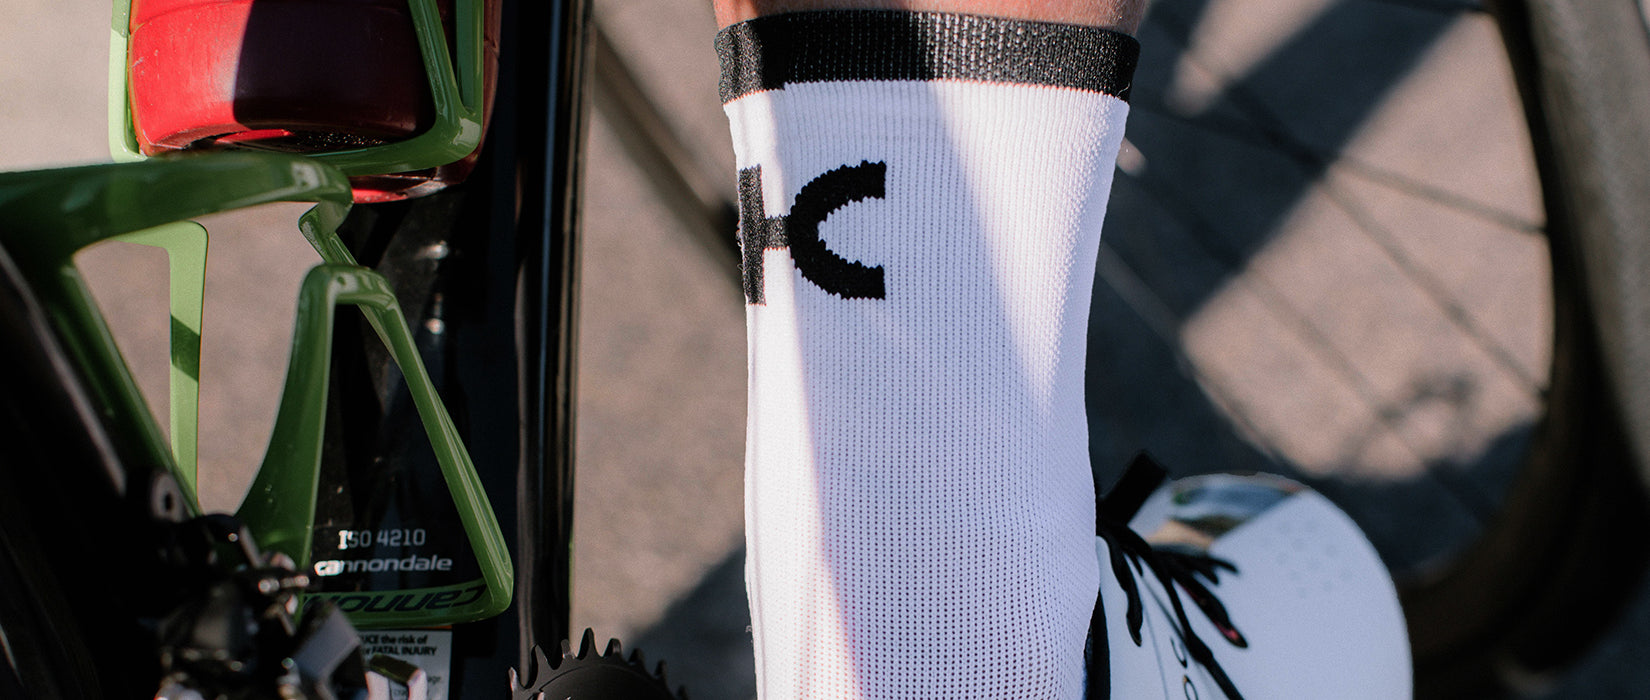 KATUSHA Performance Apparel - Men's Cycling Socks